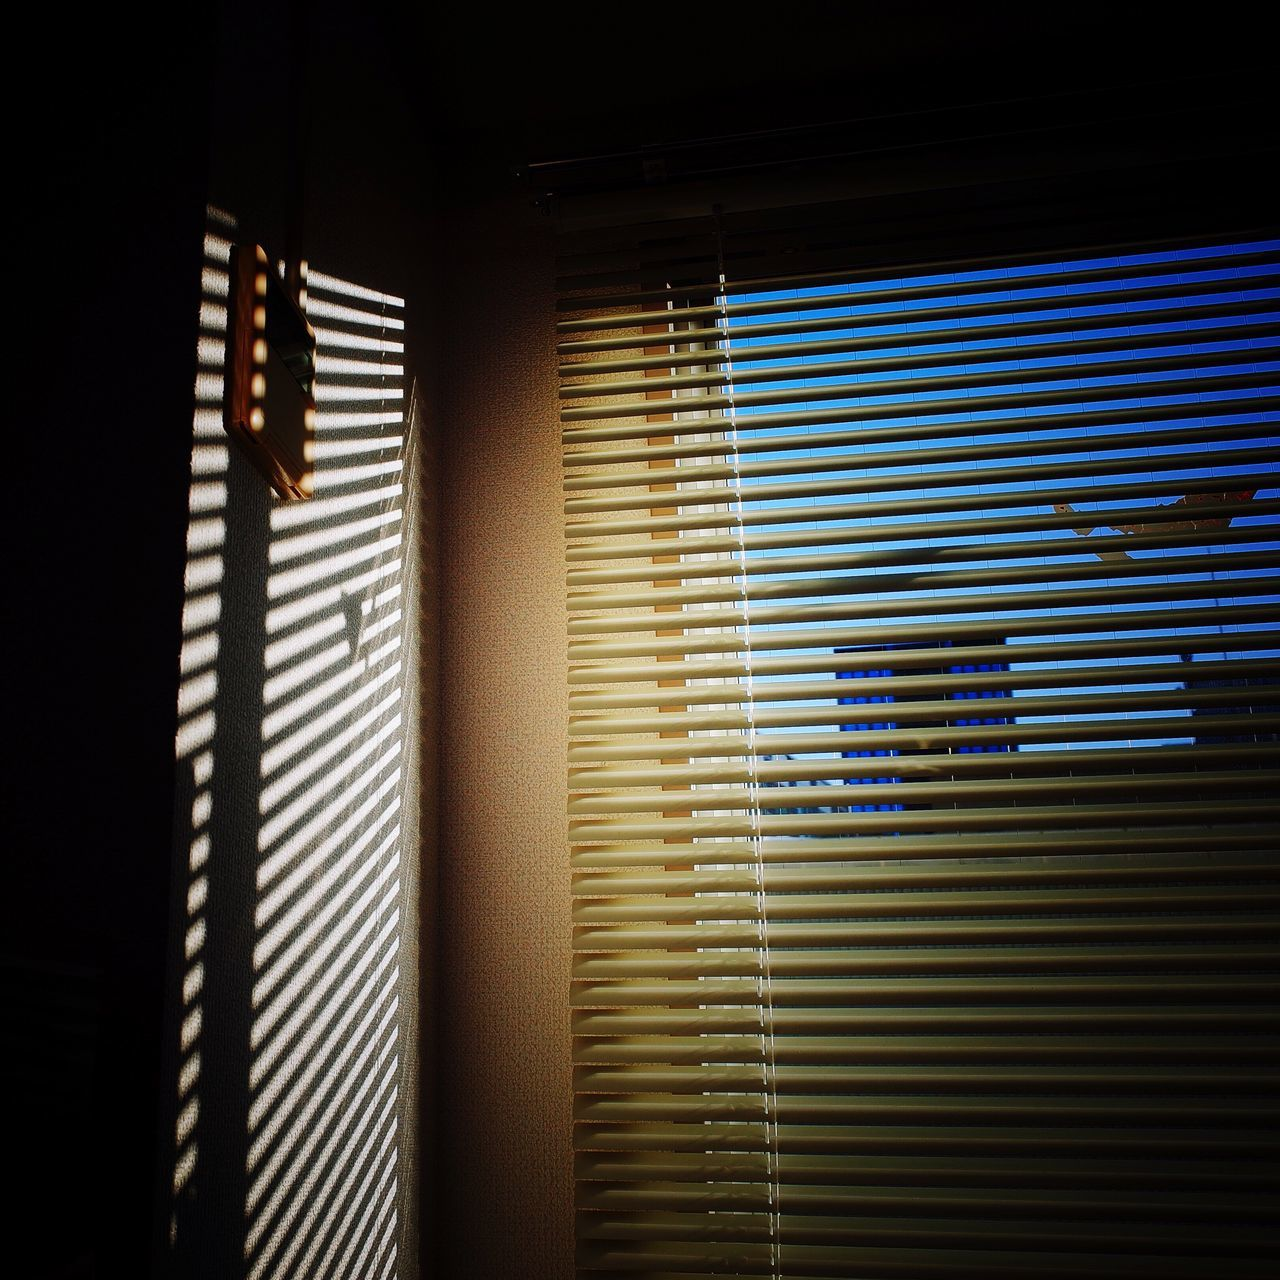 Blinds Light And Shadow Shadow Sunlight Low Angle View Window